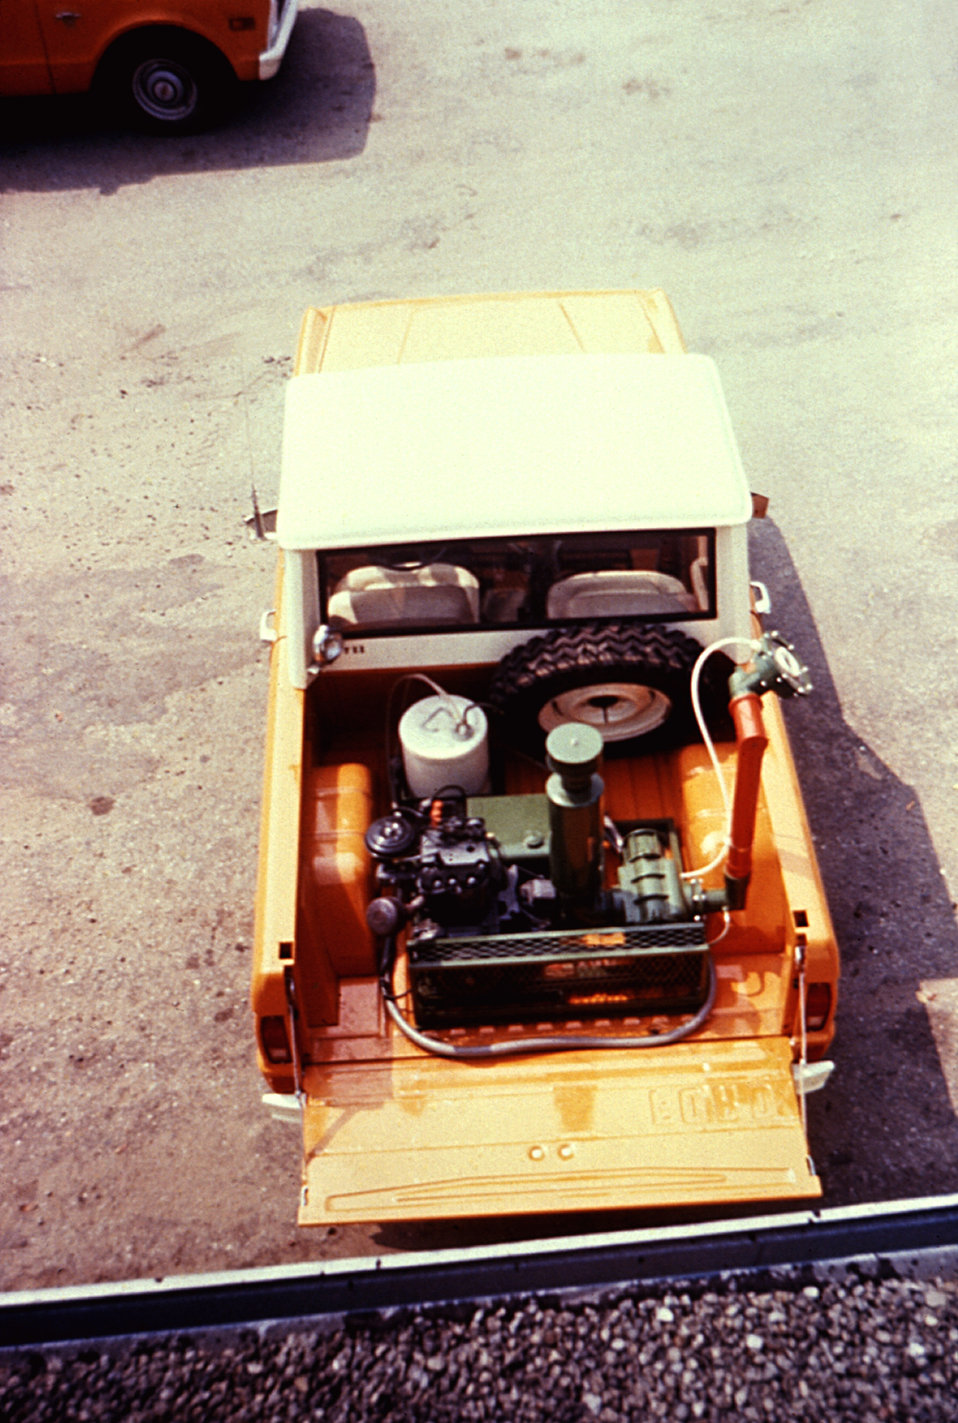 This 1981 image depicts a truck-mounted early model LECO-HD ULV (ultra-low volume) non-thermal fog generator.